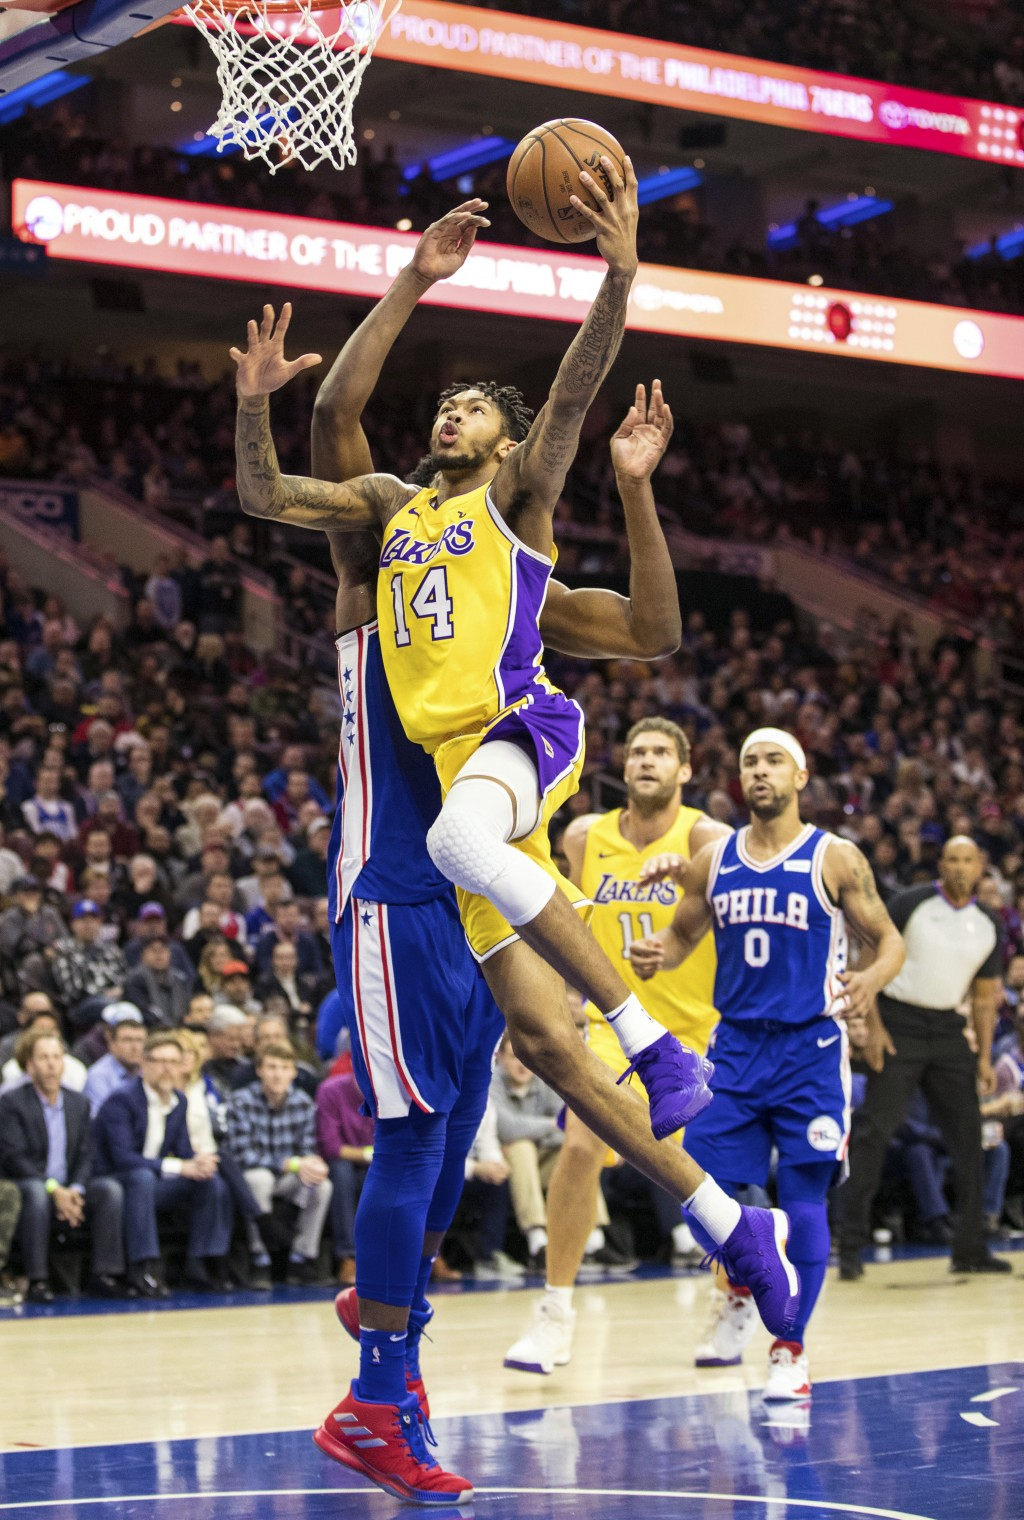 Los Angeles Lakers Brandon Ingram (14) goes up to shoot against Philadelphia 76ers Joel Embiid, of Cameroon, during the first half of an NBA basketbal